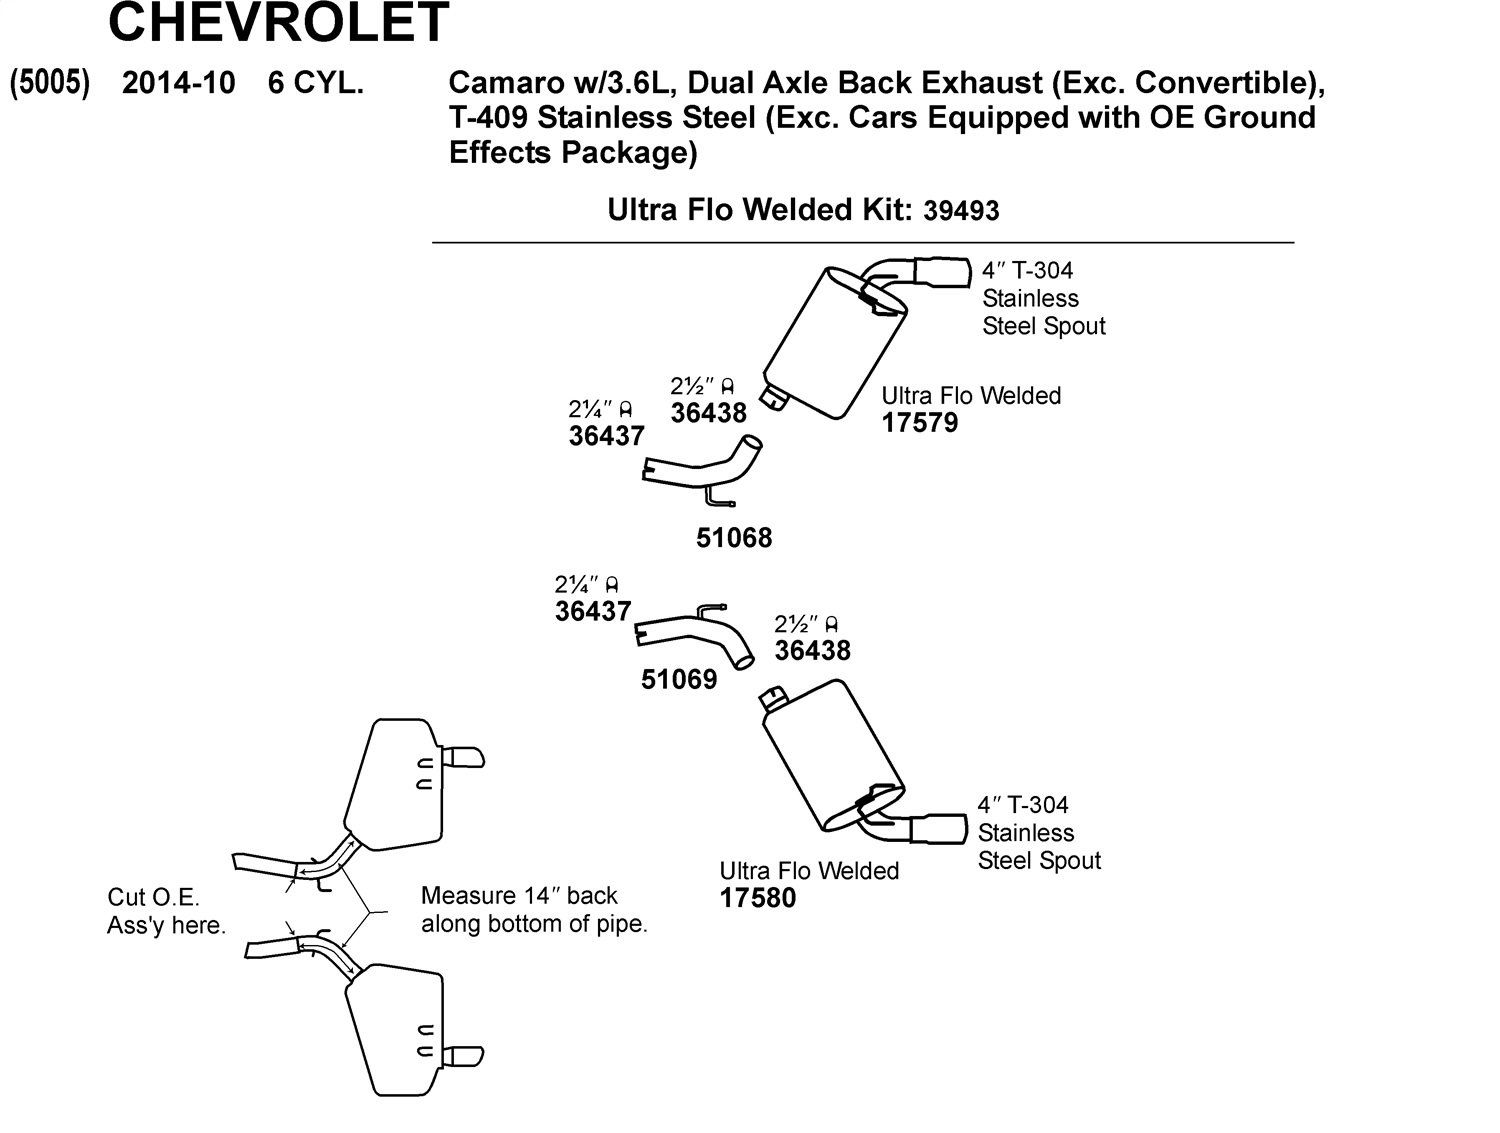 2013 Camaro Wiring Diagram Just Schematic 2014 Detailed Schematics Prius Exhaust